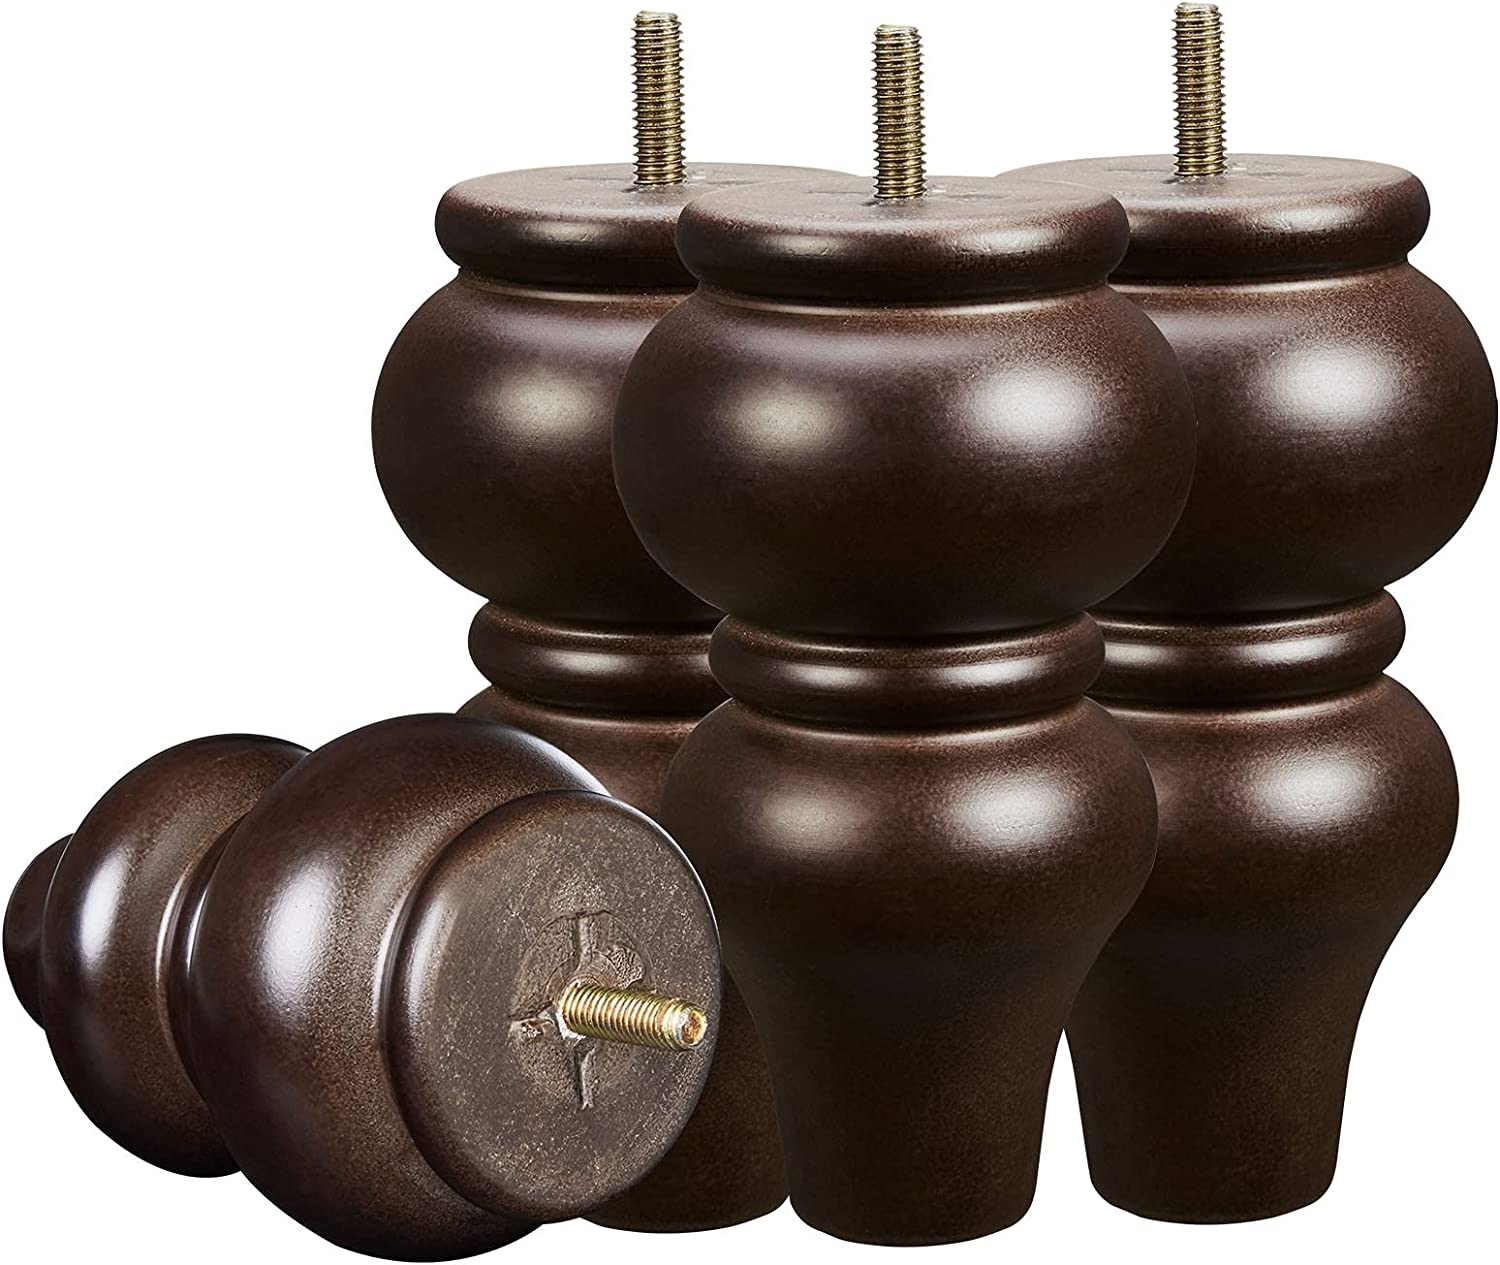 Wood Furniture Legs 6 inch Sofa Legs Pack of 4,Round Couch Legs Espresso Mid Century Desk Legs,Sofa Replacement Parts,for Dresser Legs Sideboard Recliner Couch Circle Chair Couch Riser Coffee Table